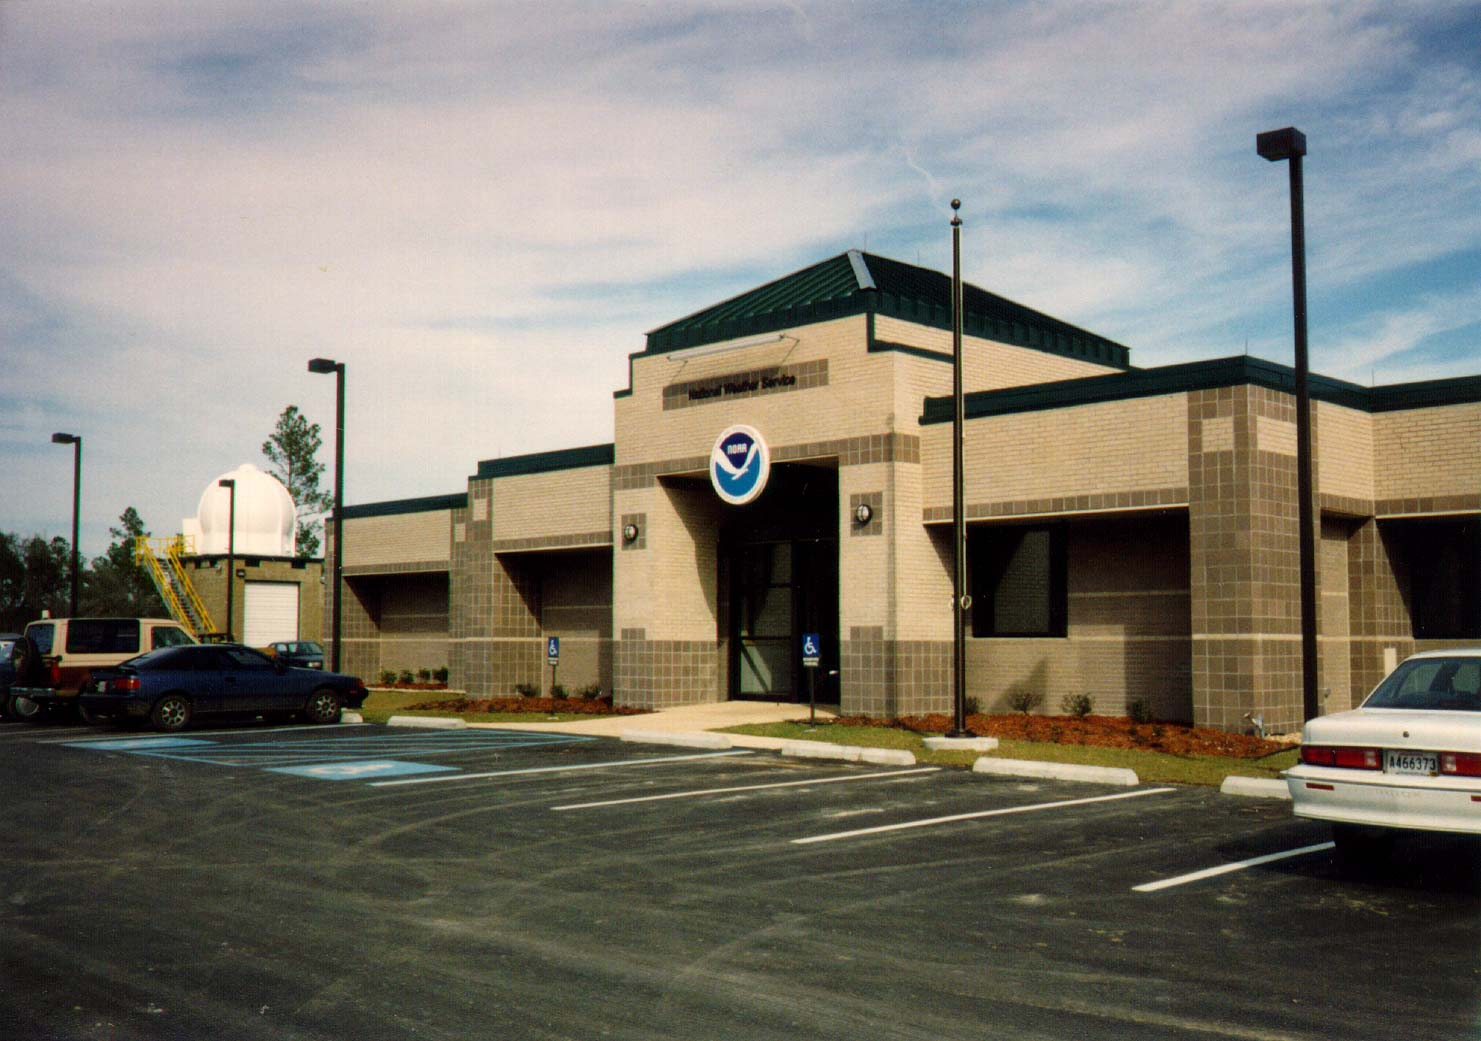 New Orleans/Baton Rouge National Weather Service Office